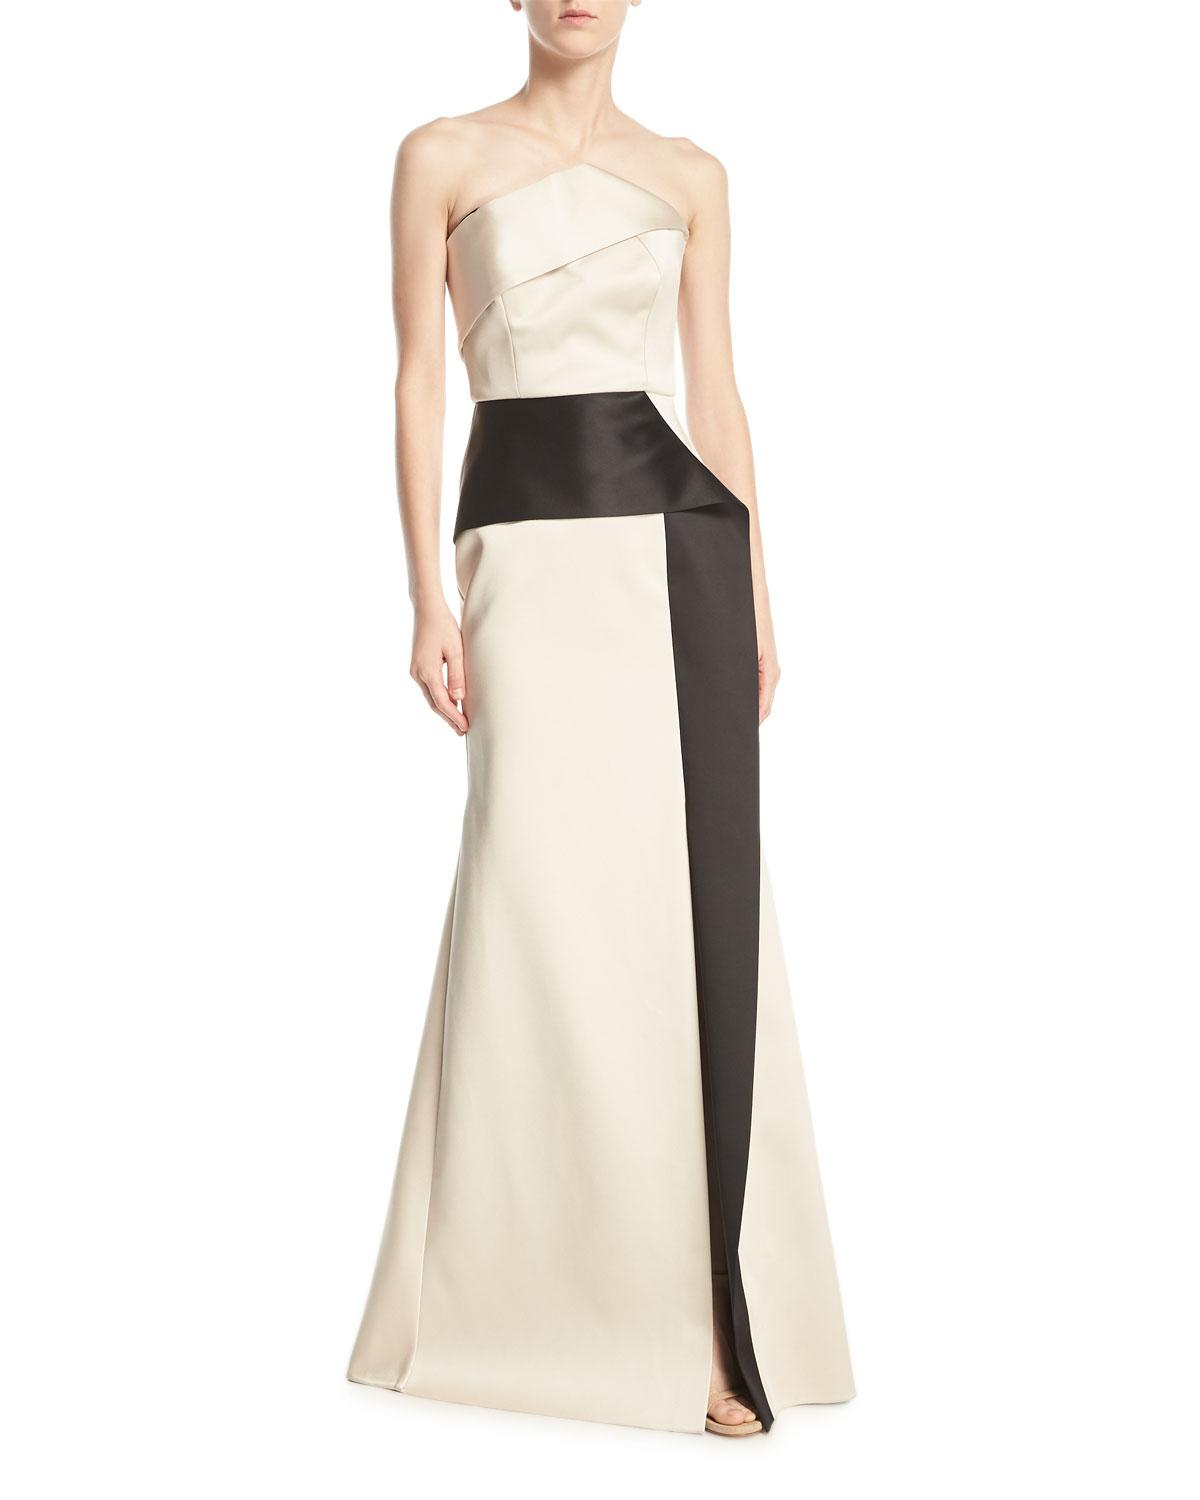 c0e247f44683 Roland Mouret Addover Strapless Two-Tone Peplum Evening Gown, Pink/Black